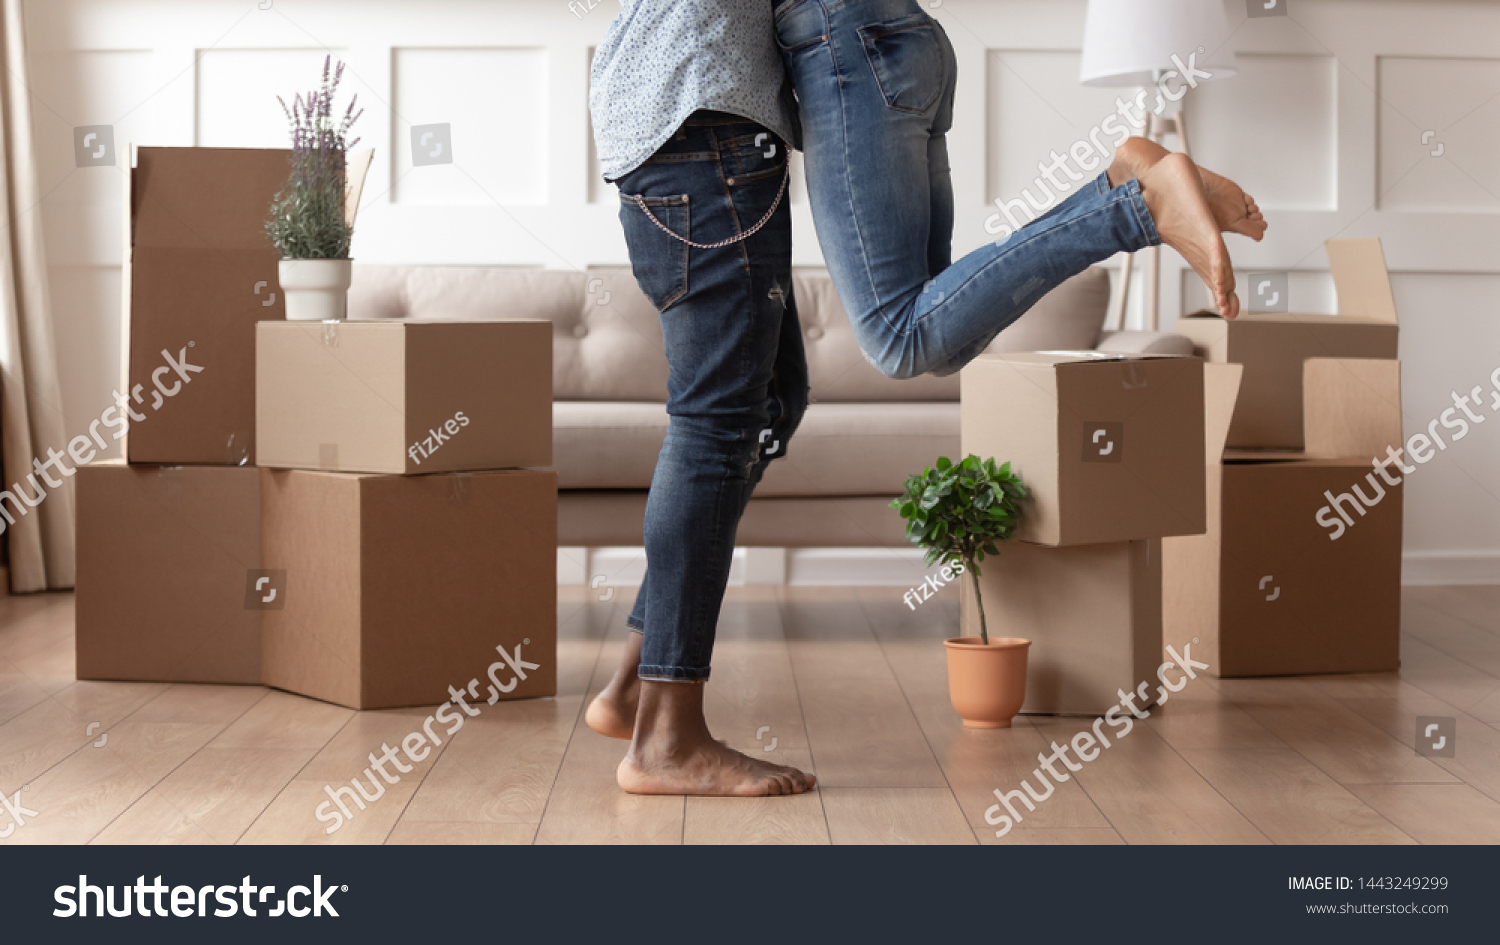 Close up young husband in jeans lift wife surrounded by cardboard boxes excited to move in new flat, happy african American couple have fun hug feel euphoric relocating together to own house #1443249299